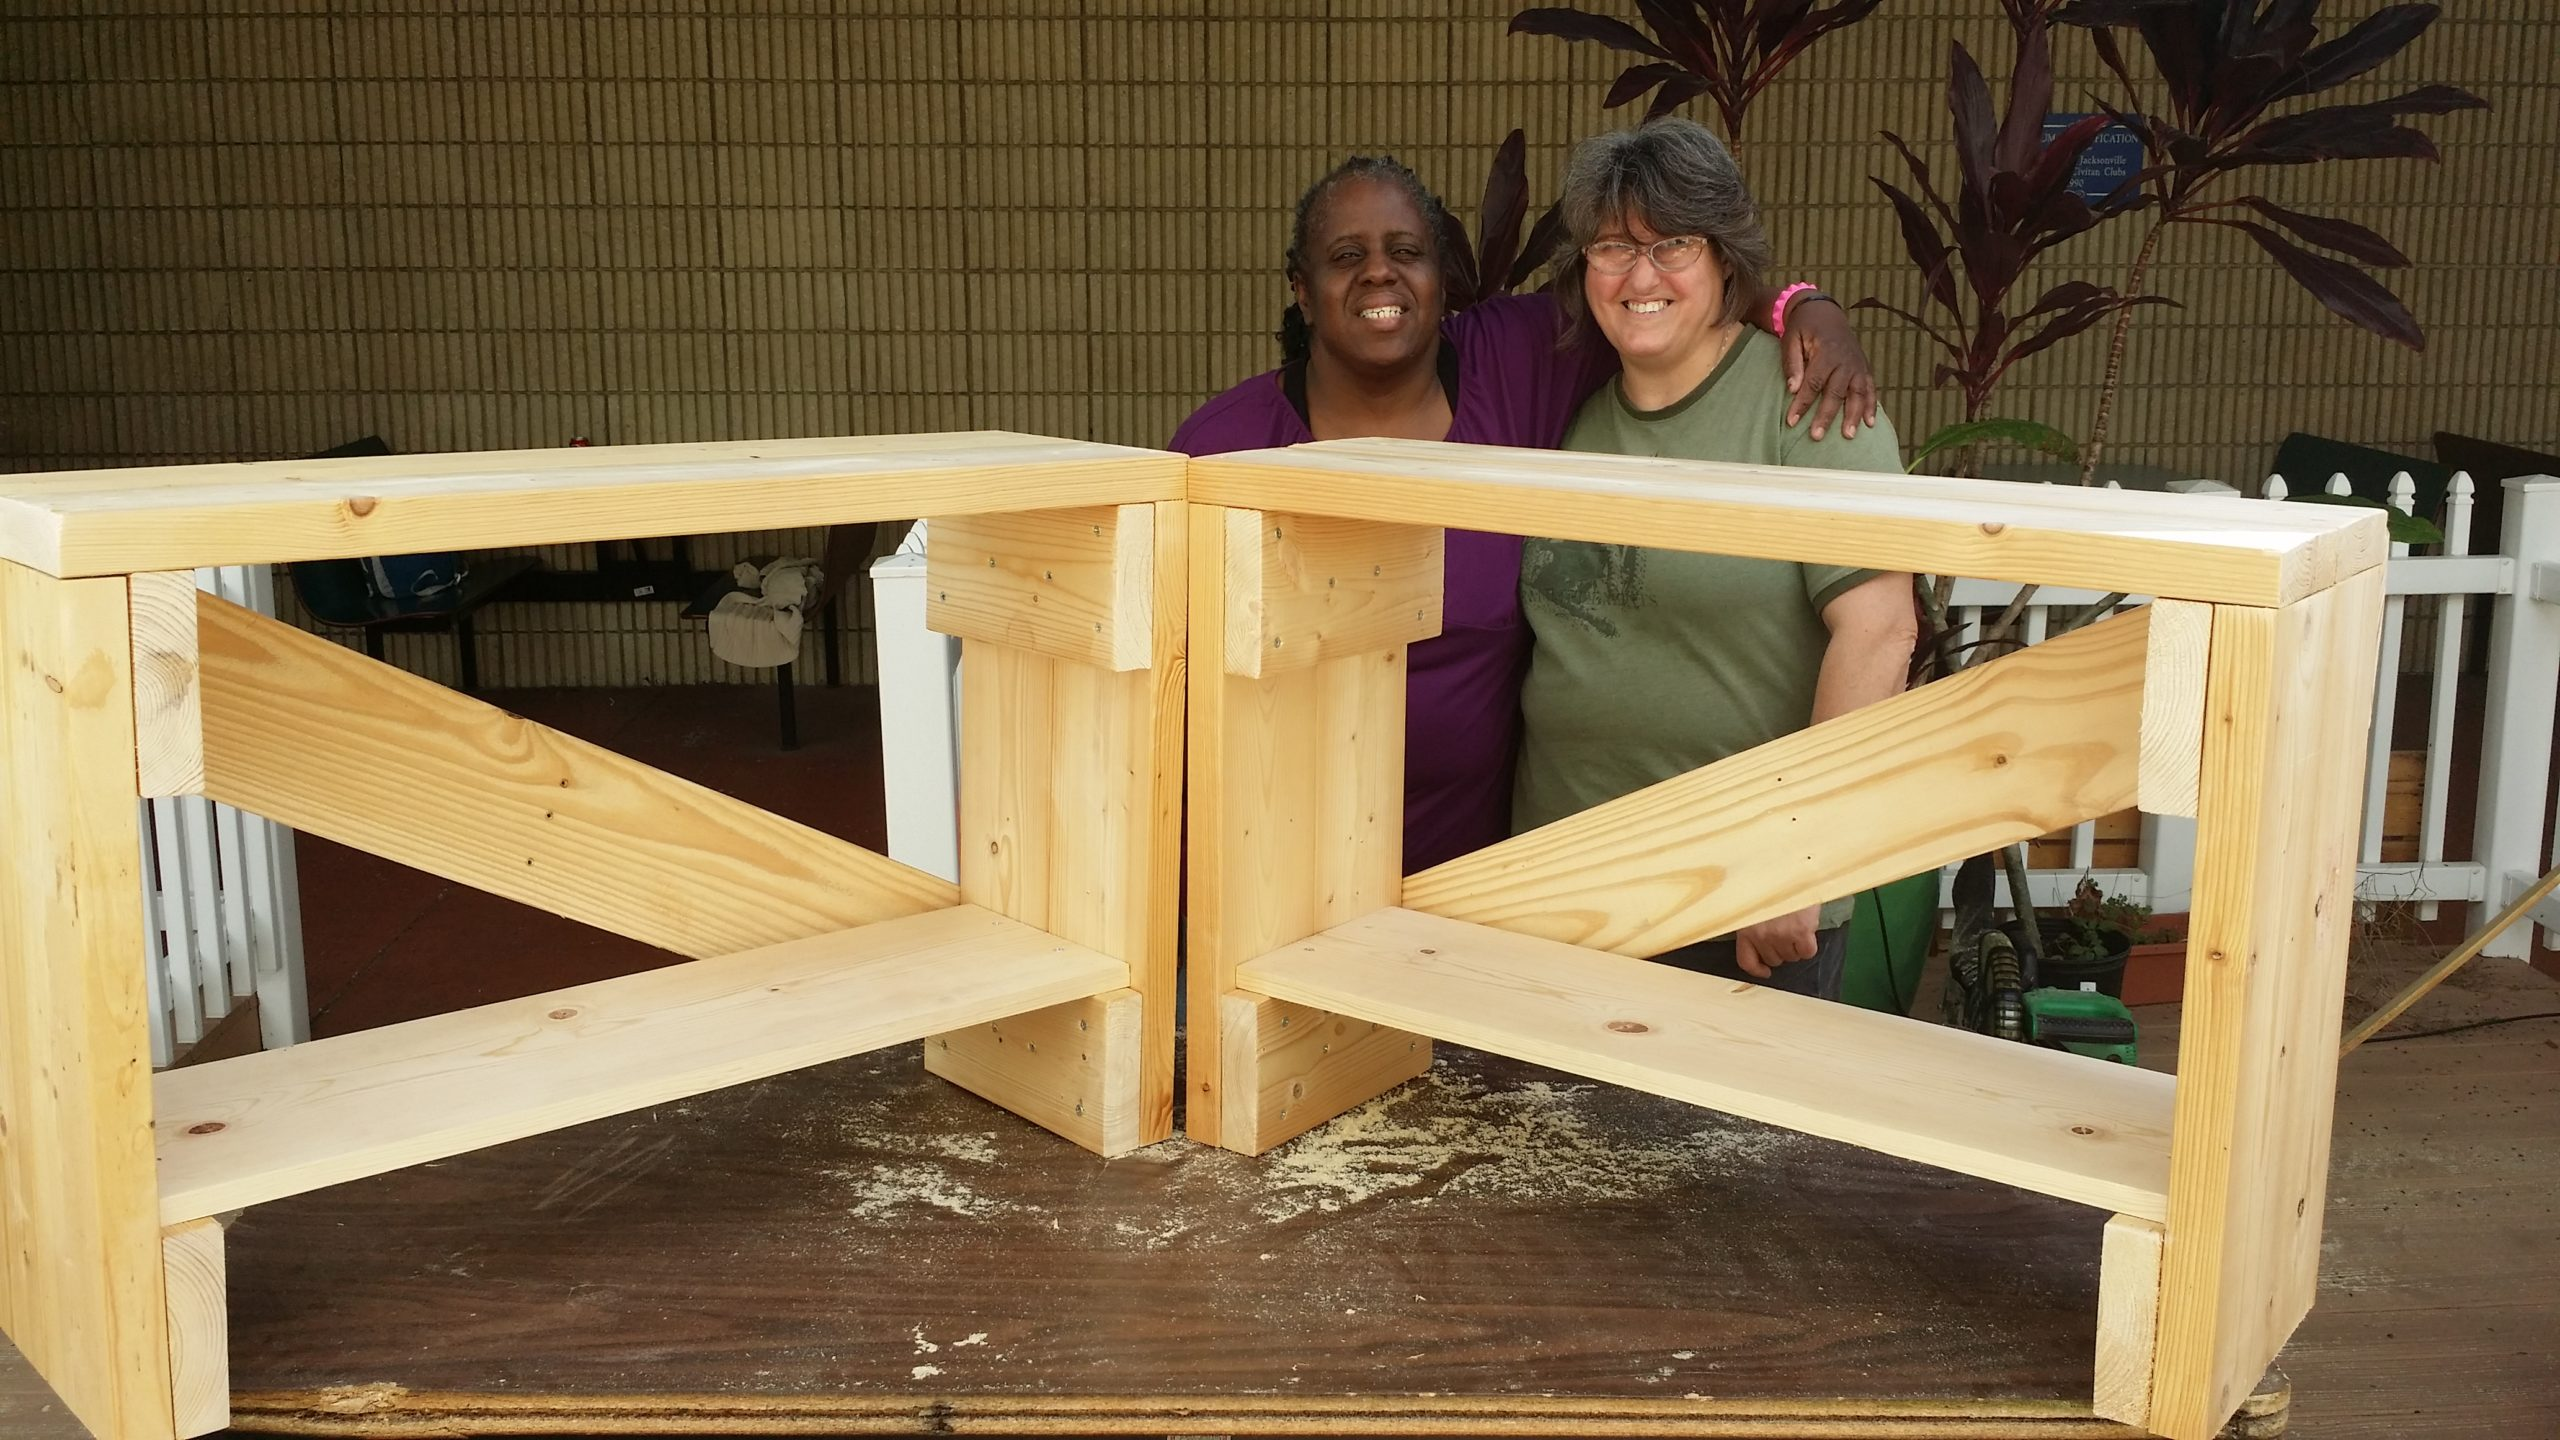 women building something with wood